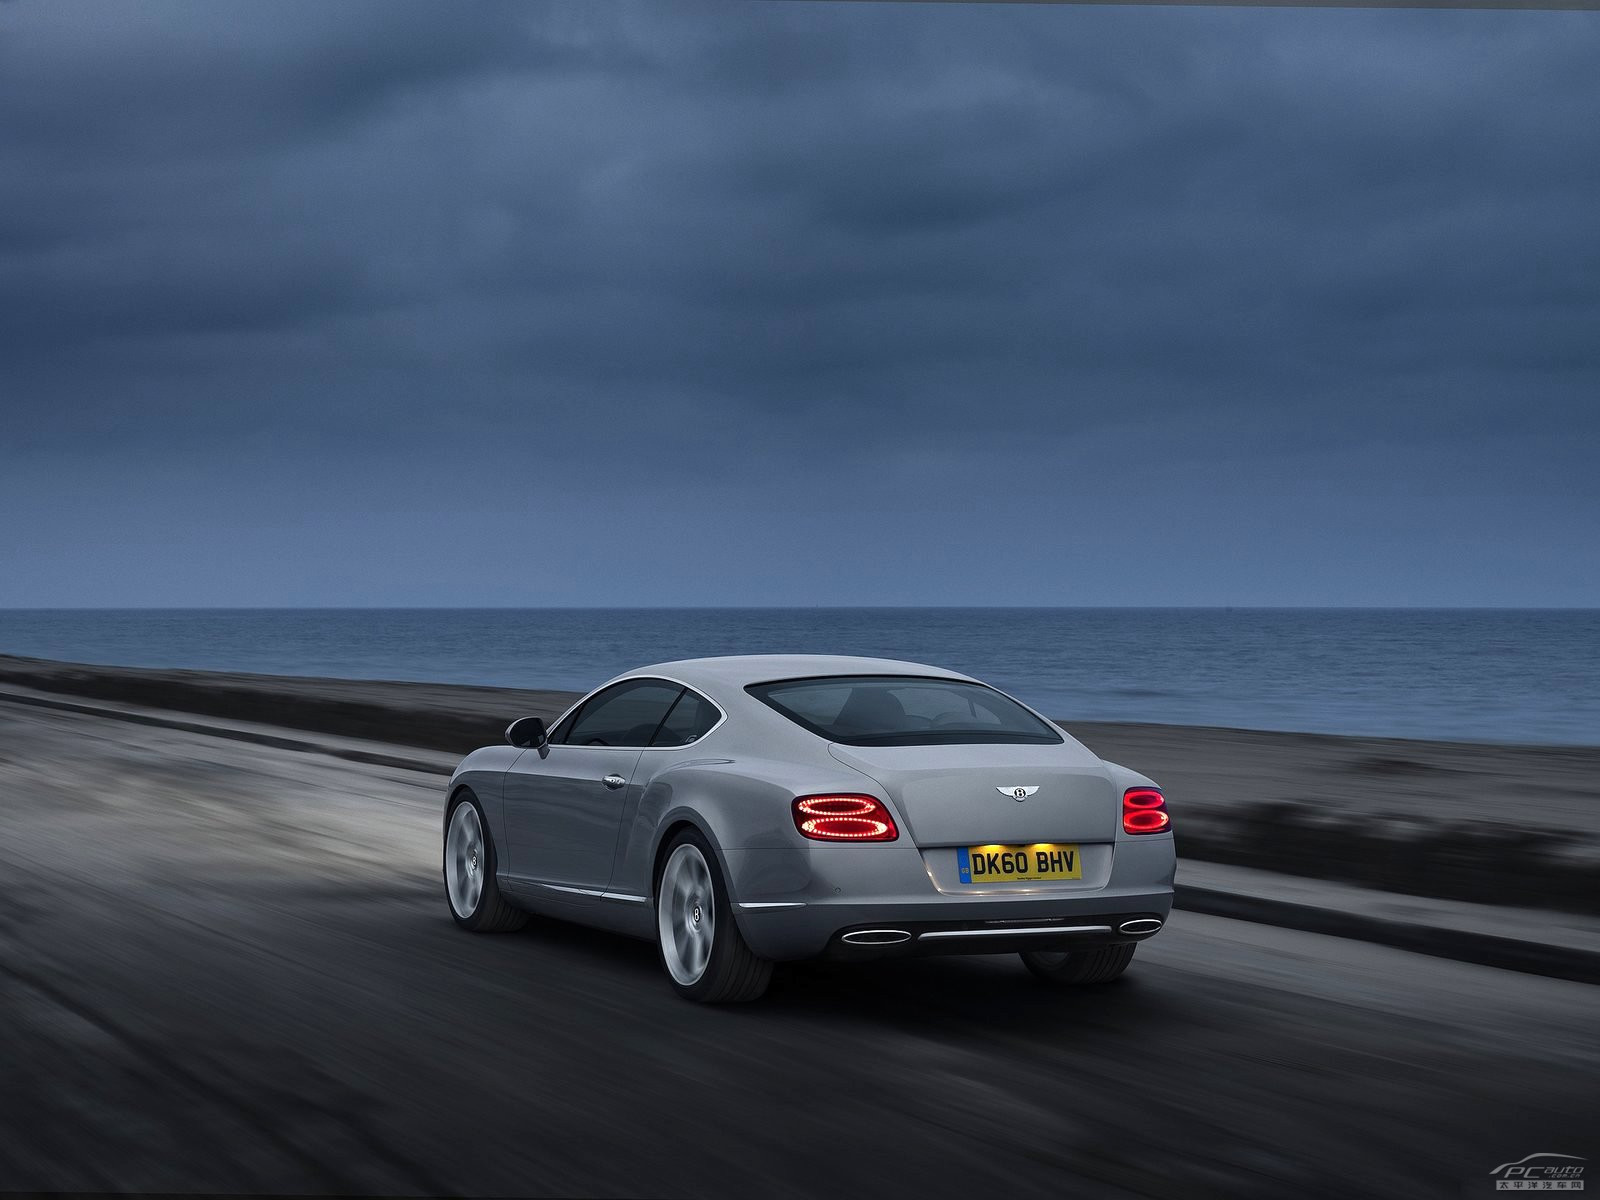 2012 Bentley Continental Gt Evaluation With Full Wallpaper - medium